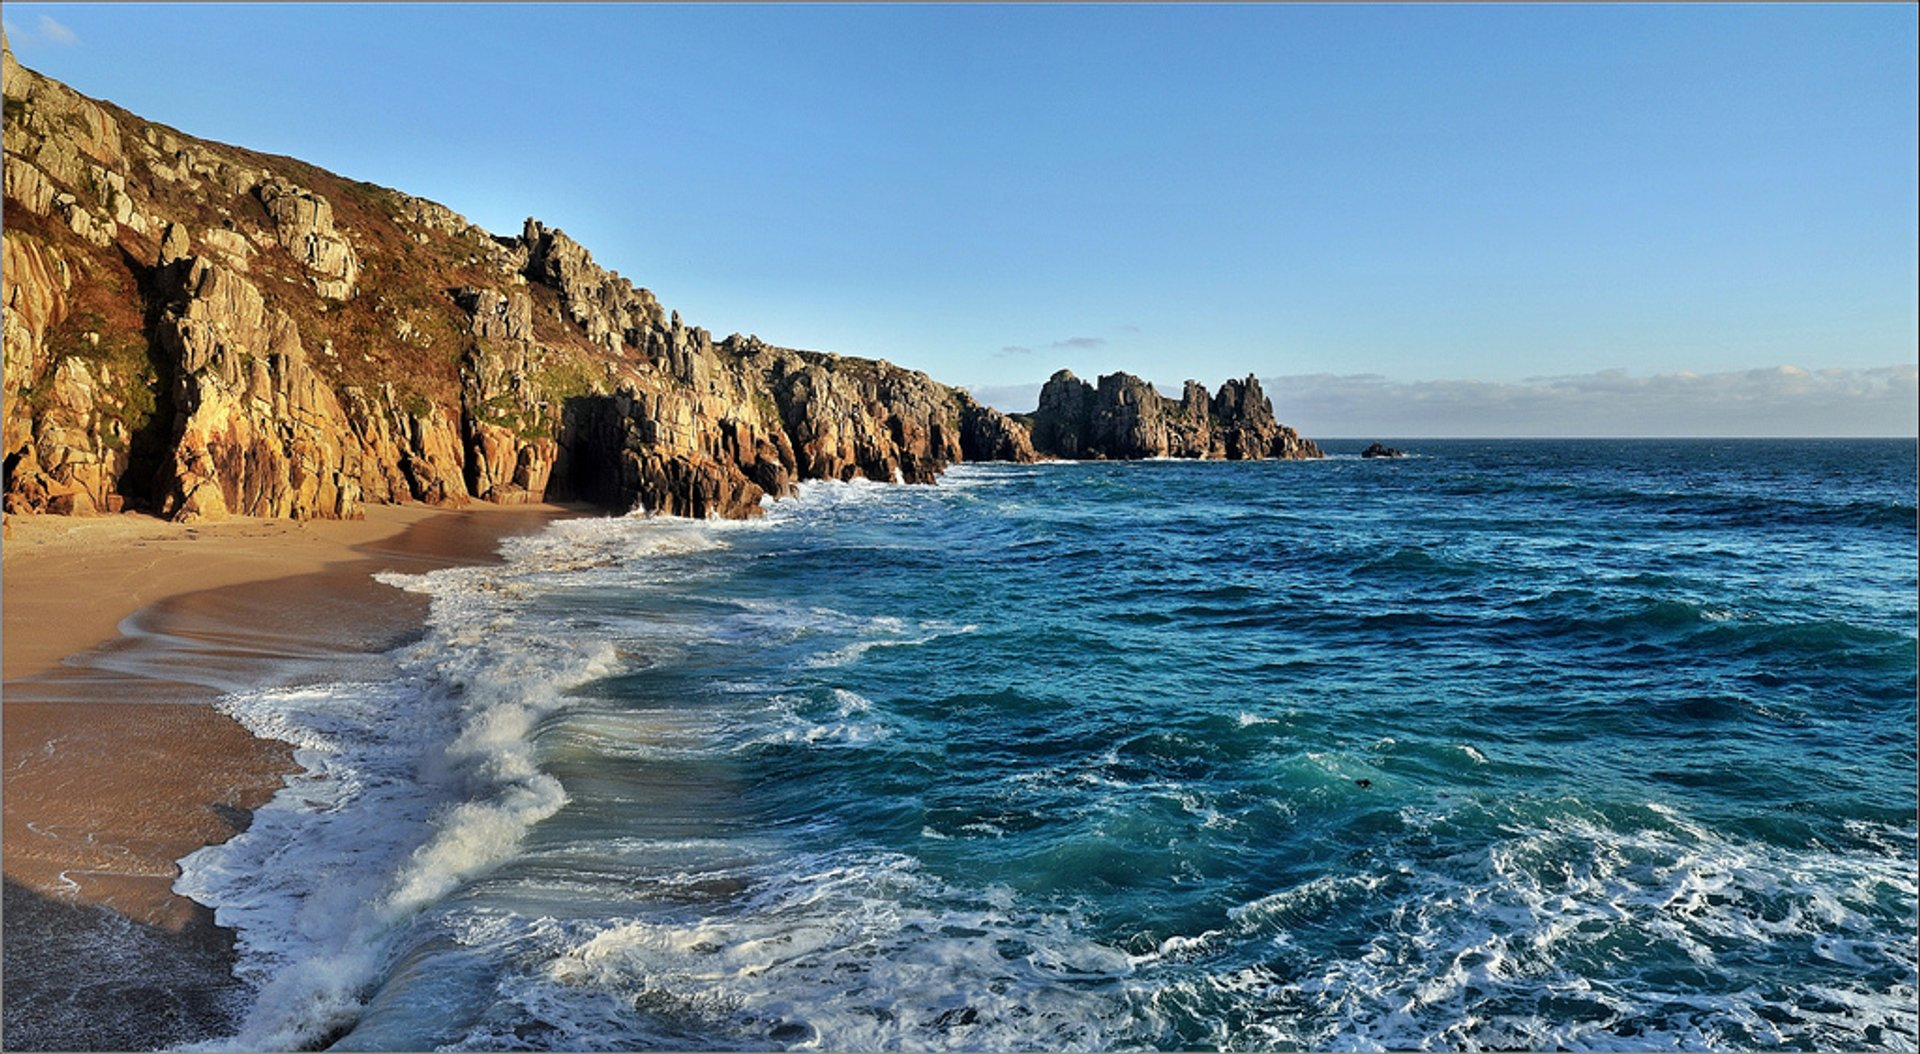 Porthcurno Beach in Cornwall 2020